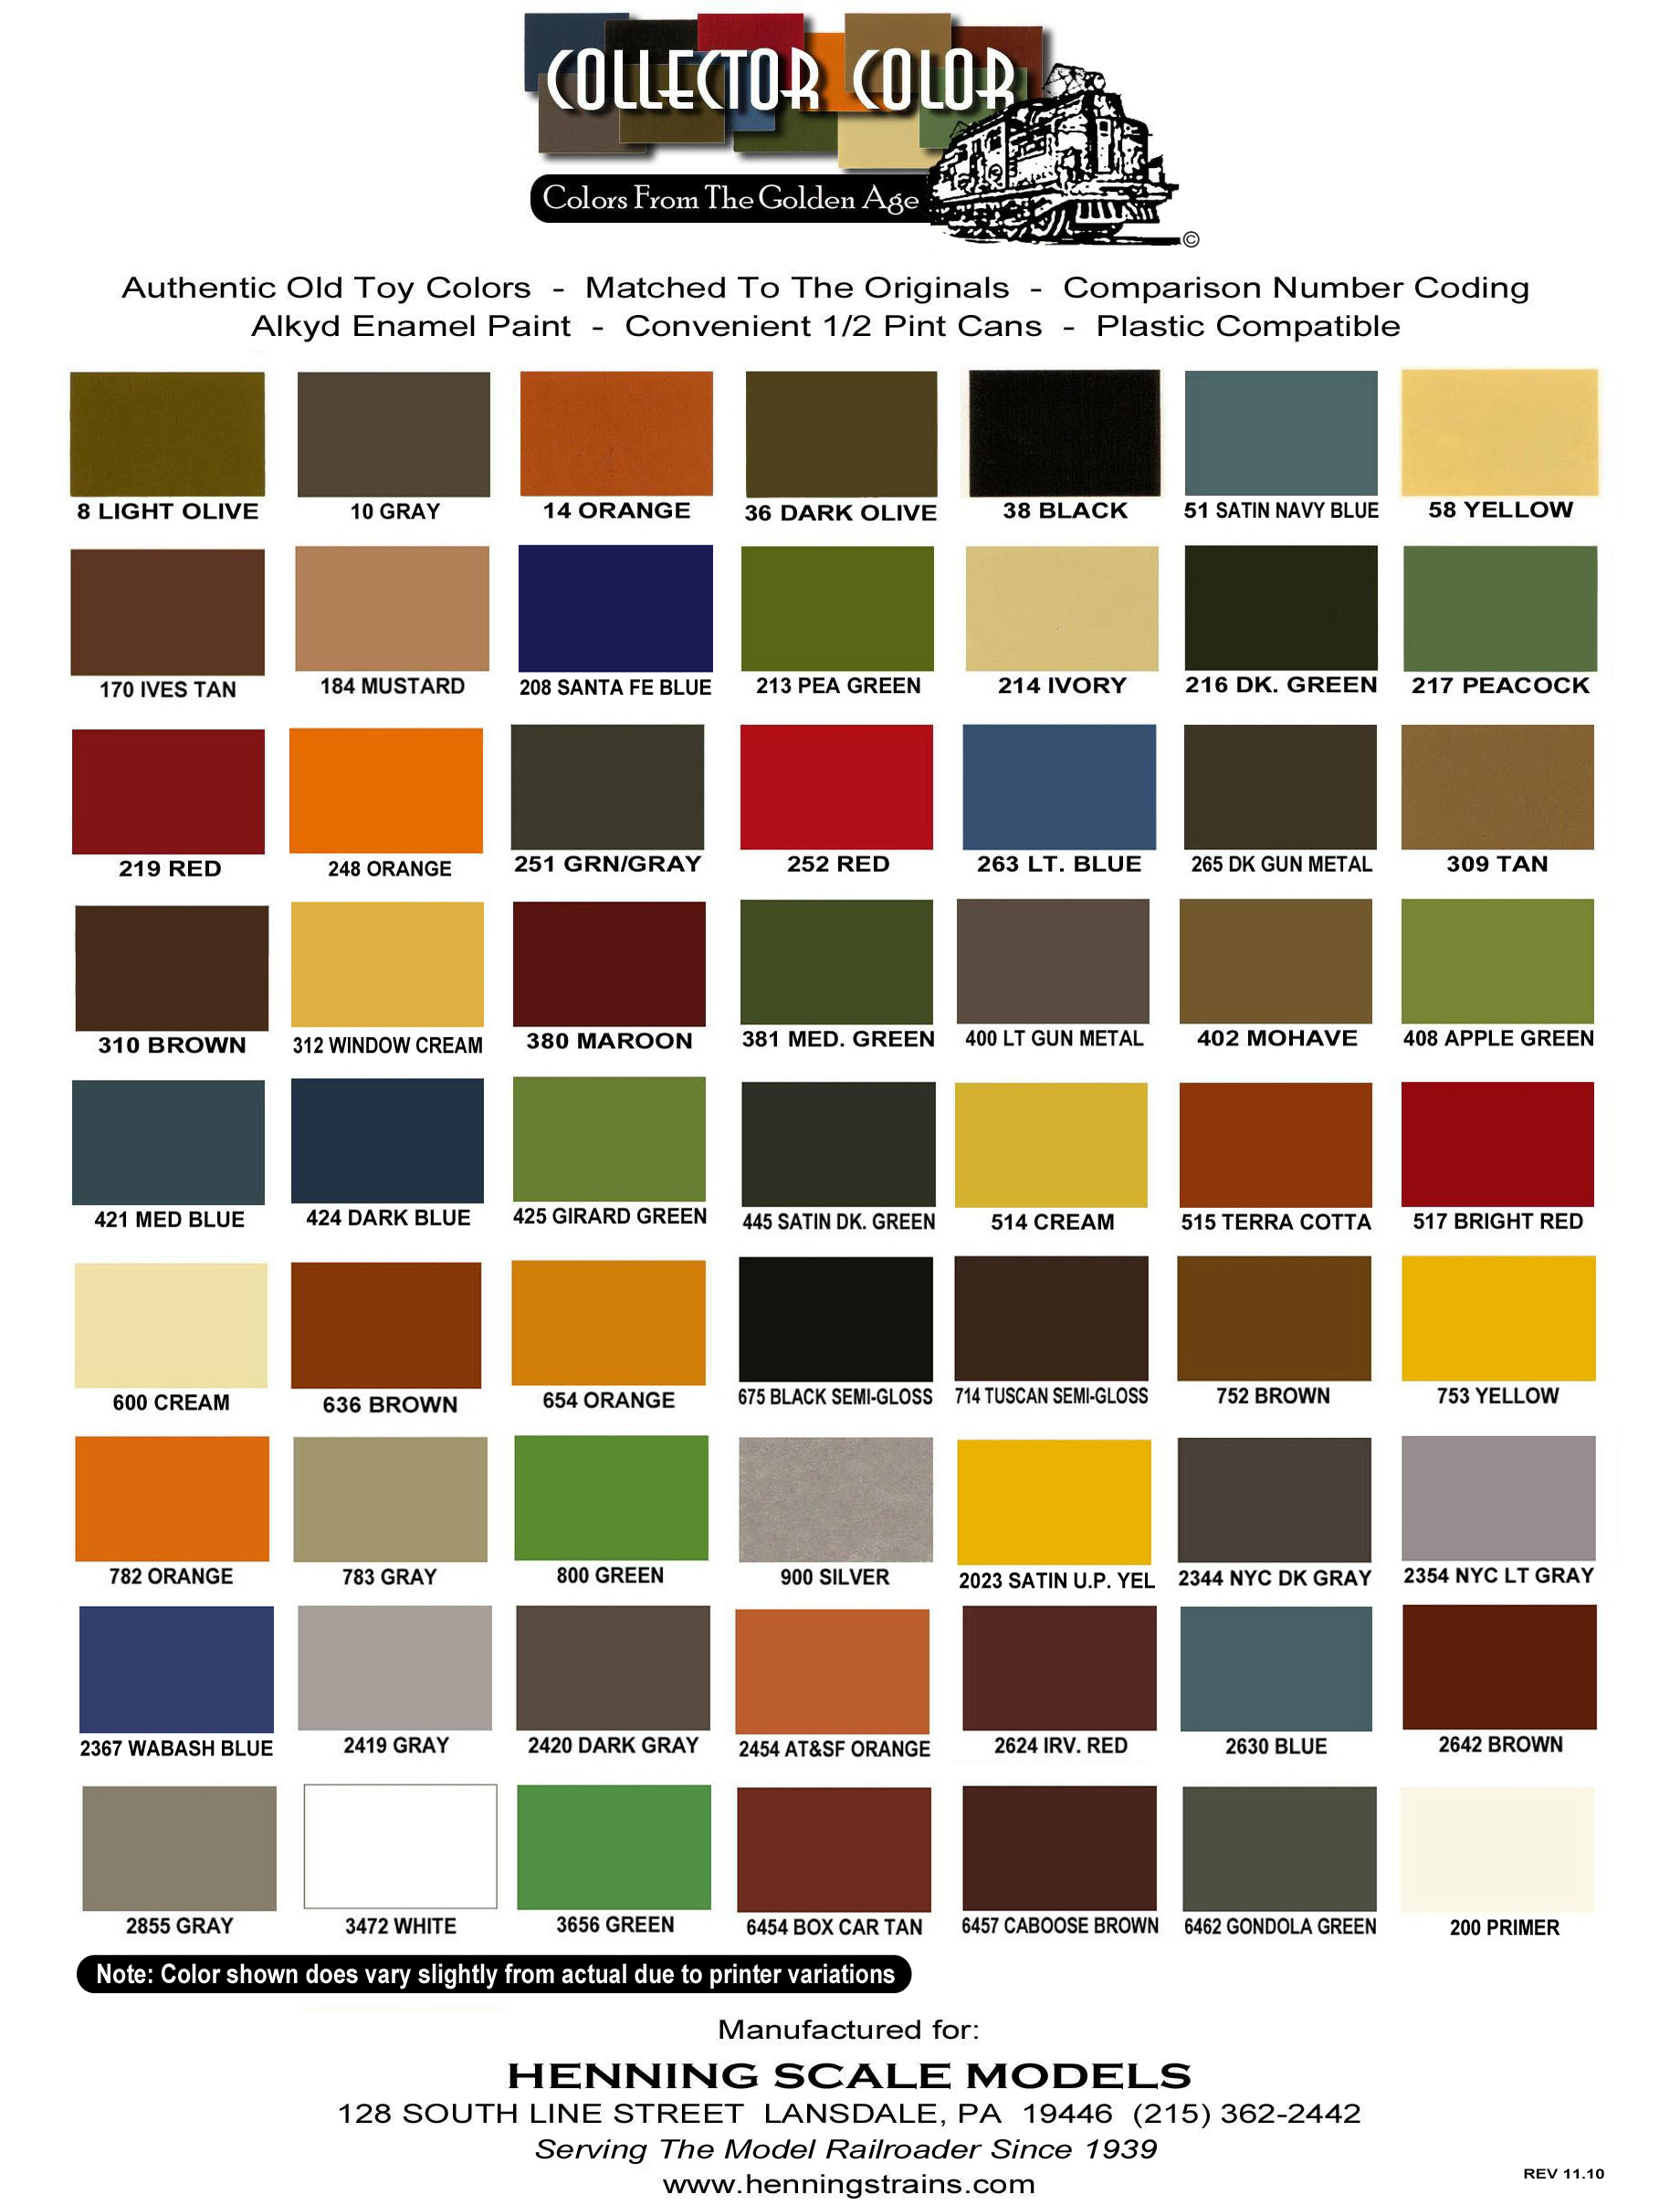 Hennings collector color paint color sheet